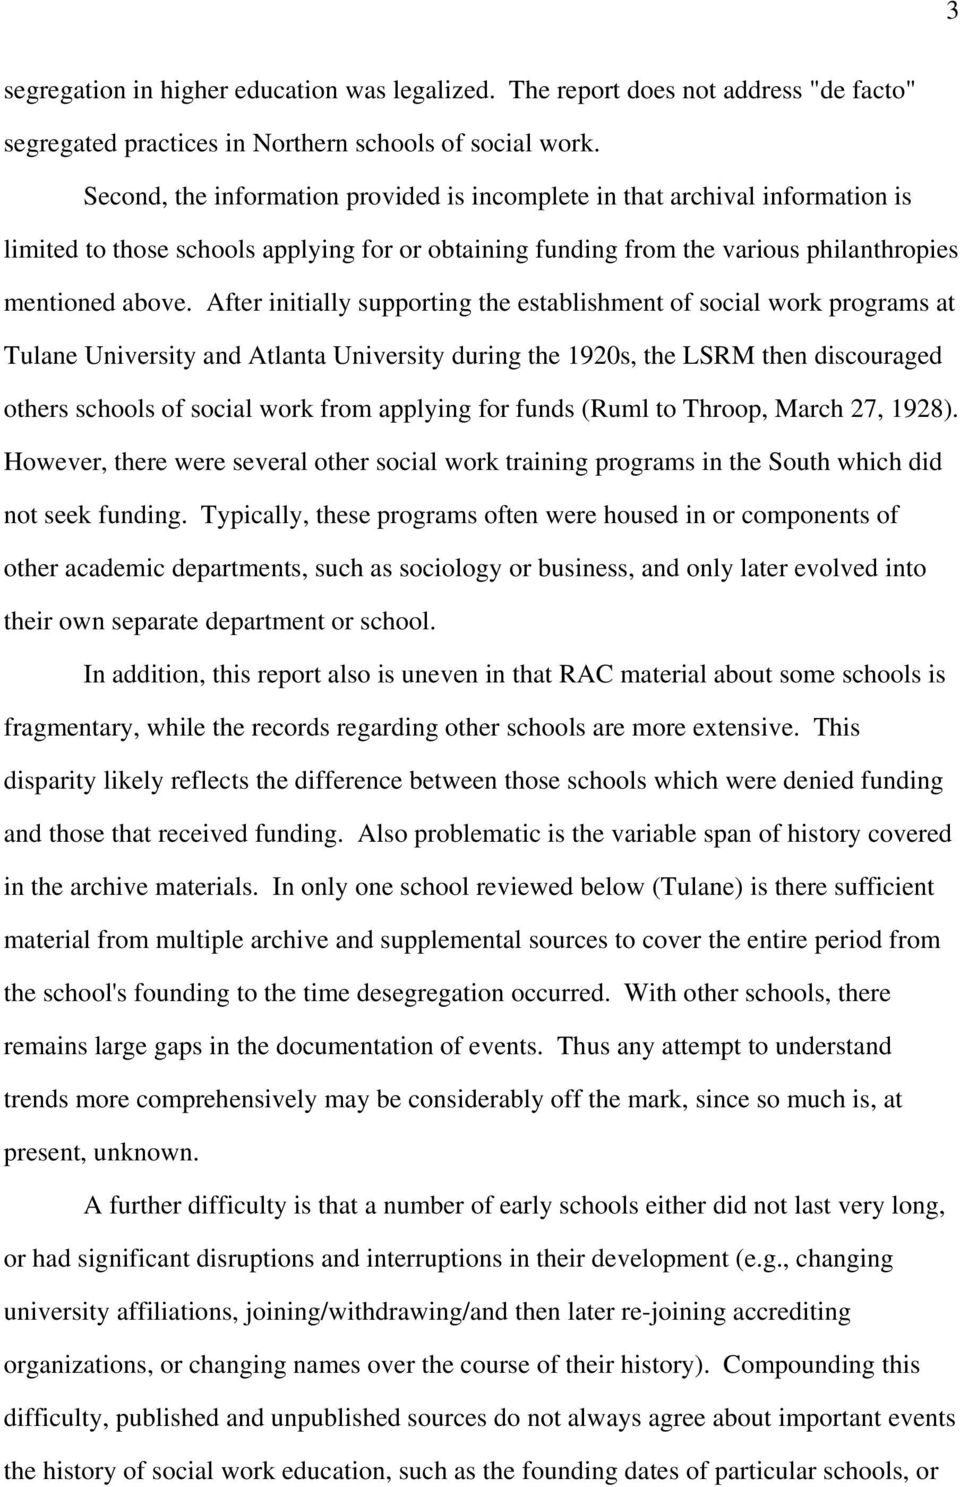 After initially supporting the establishment of social work programs at Tulane University and Atlanta University during the 1920s, the LSRM then discouraged others schools of social work from